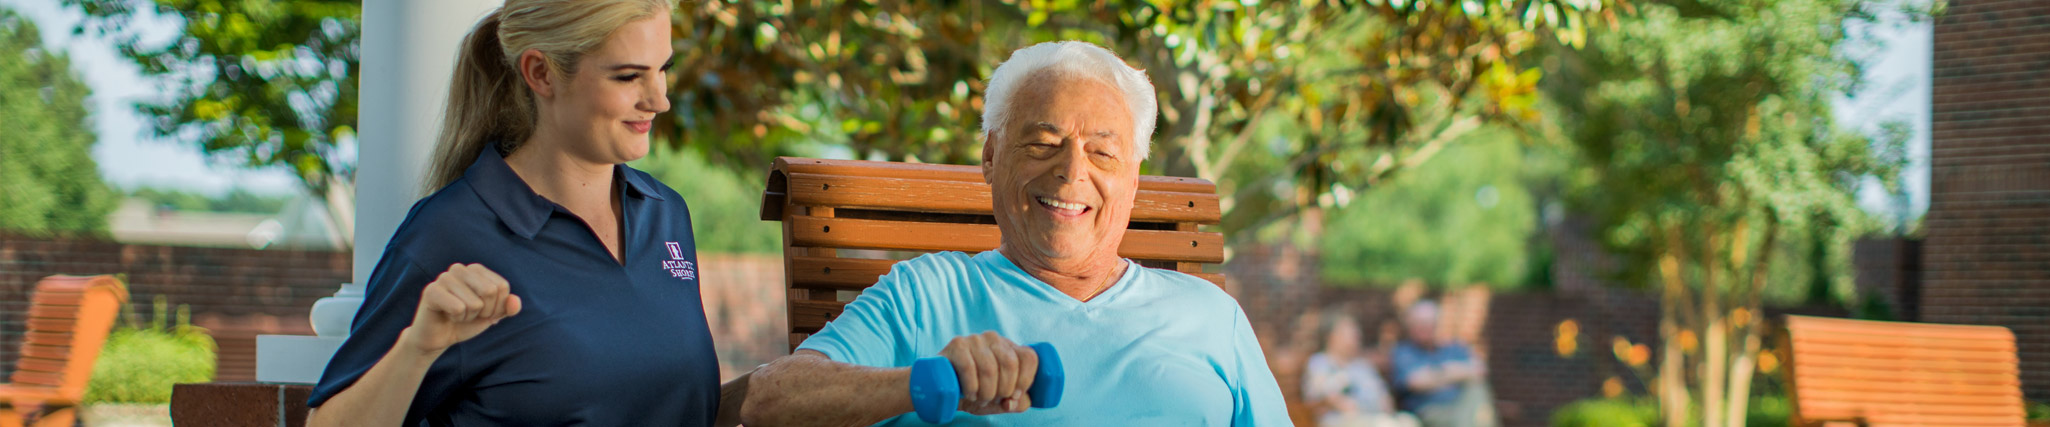 senior doing physical therapy with a physical therapist at a senior living community